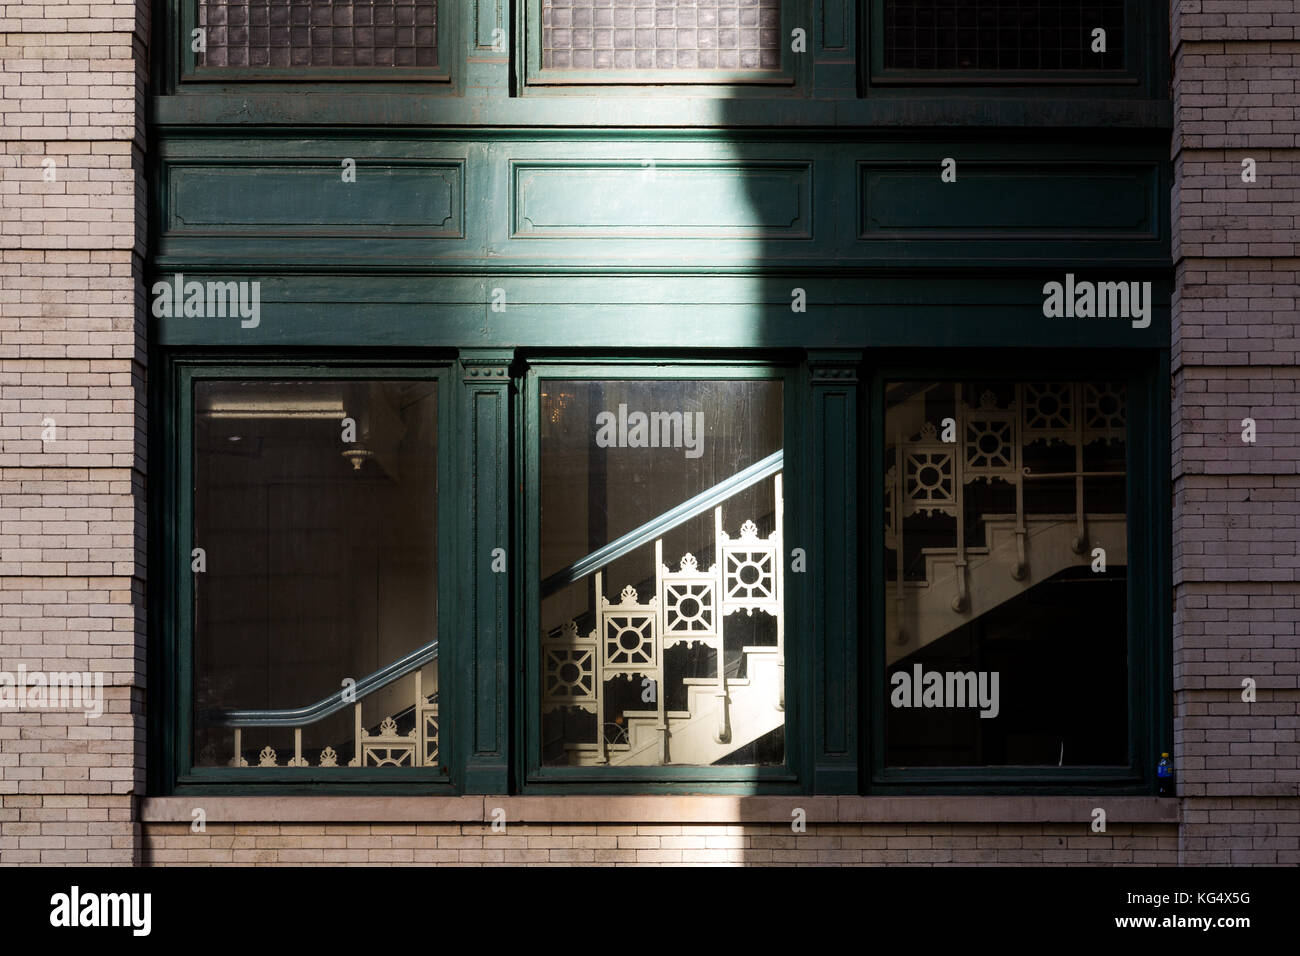 Detail of building window and stairway on 18th street near sixth avenue in New York City. - Stock Image